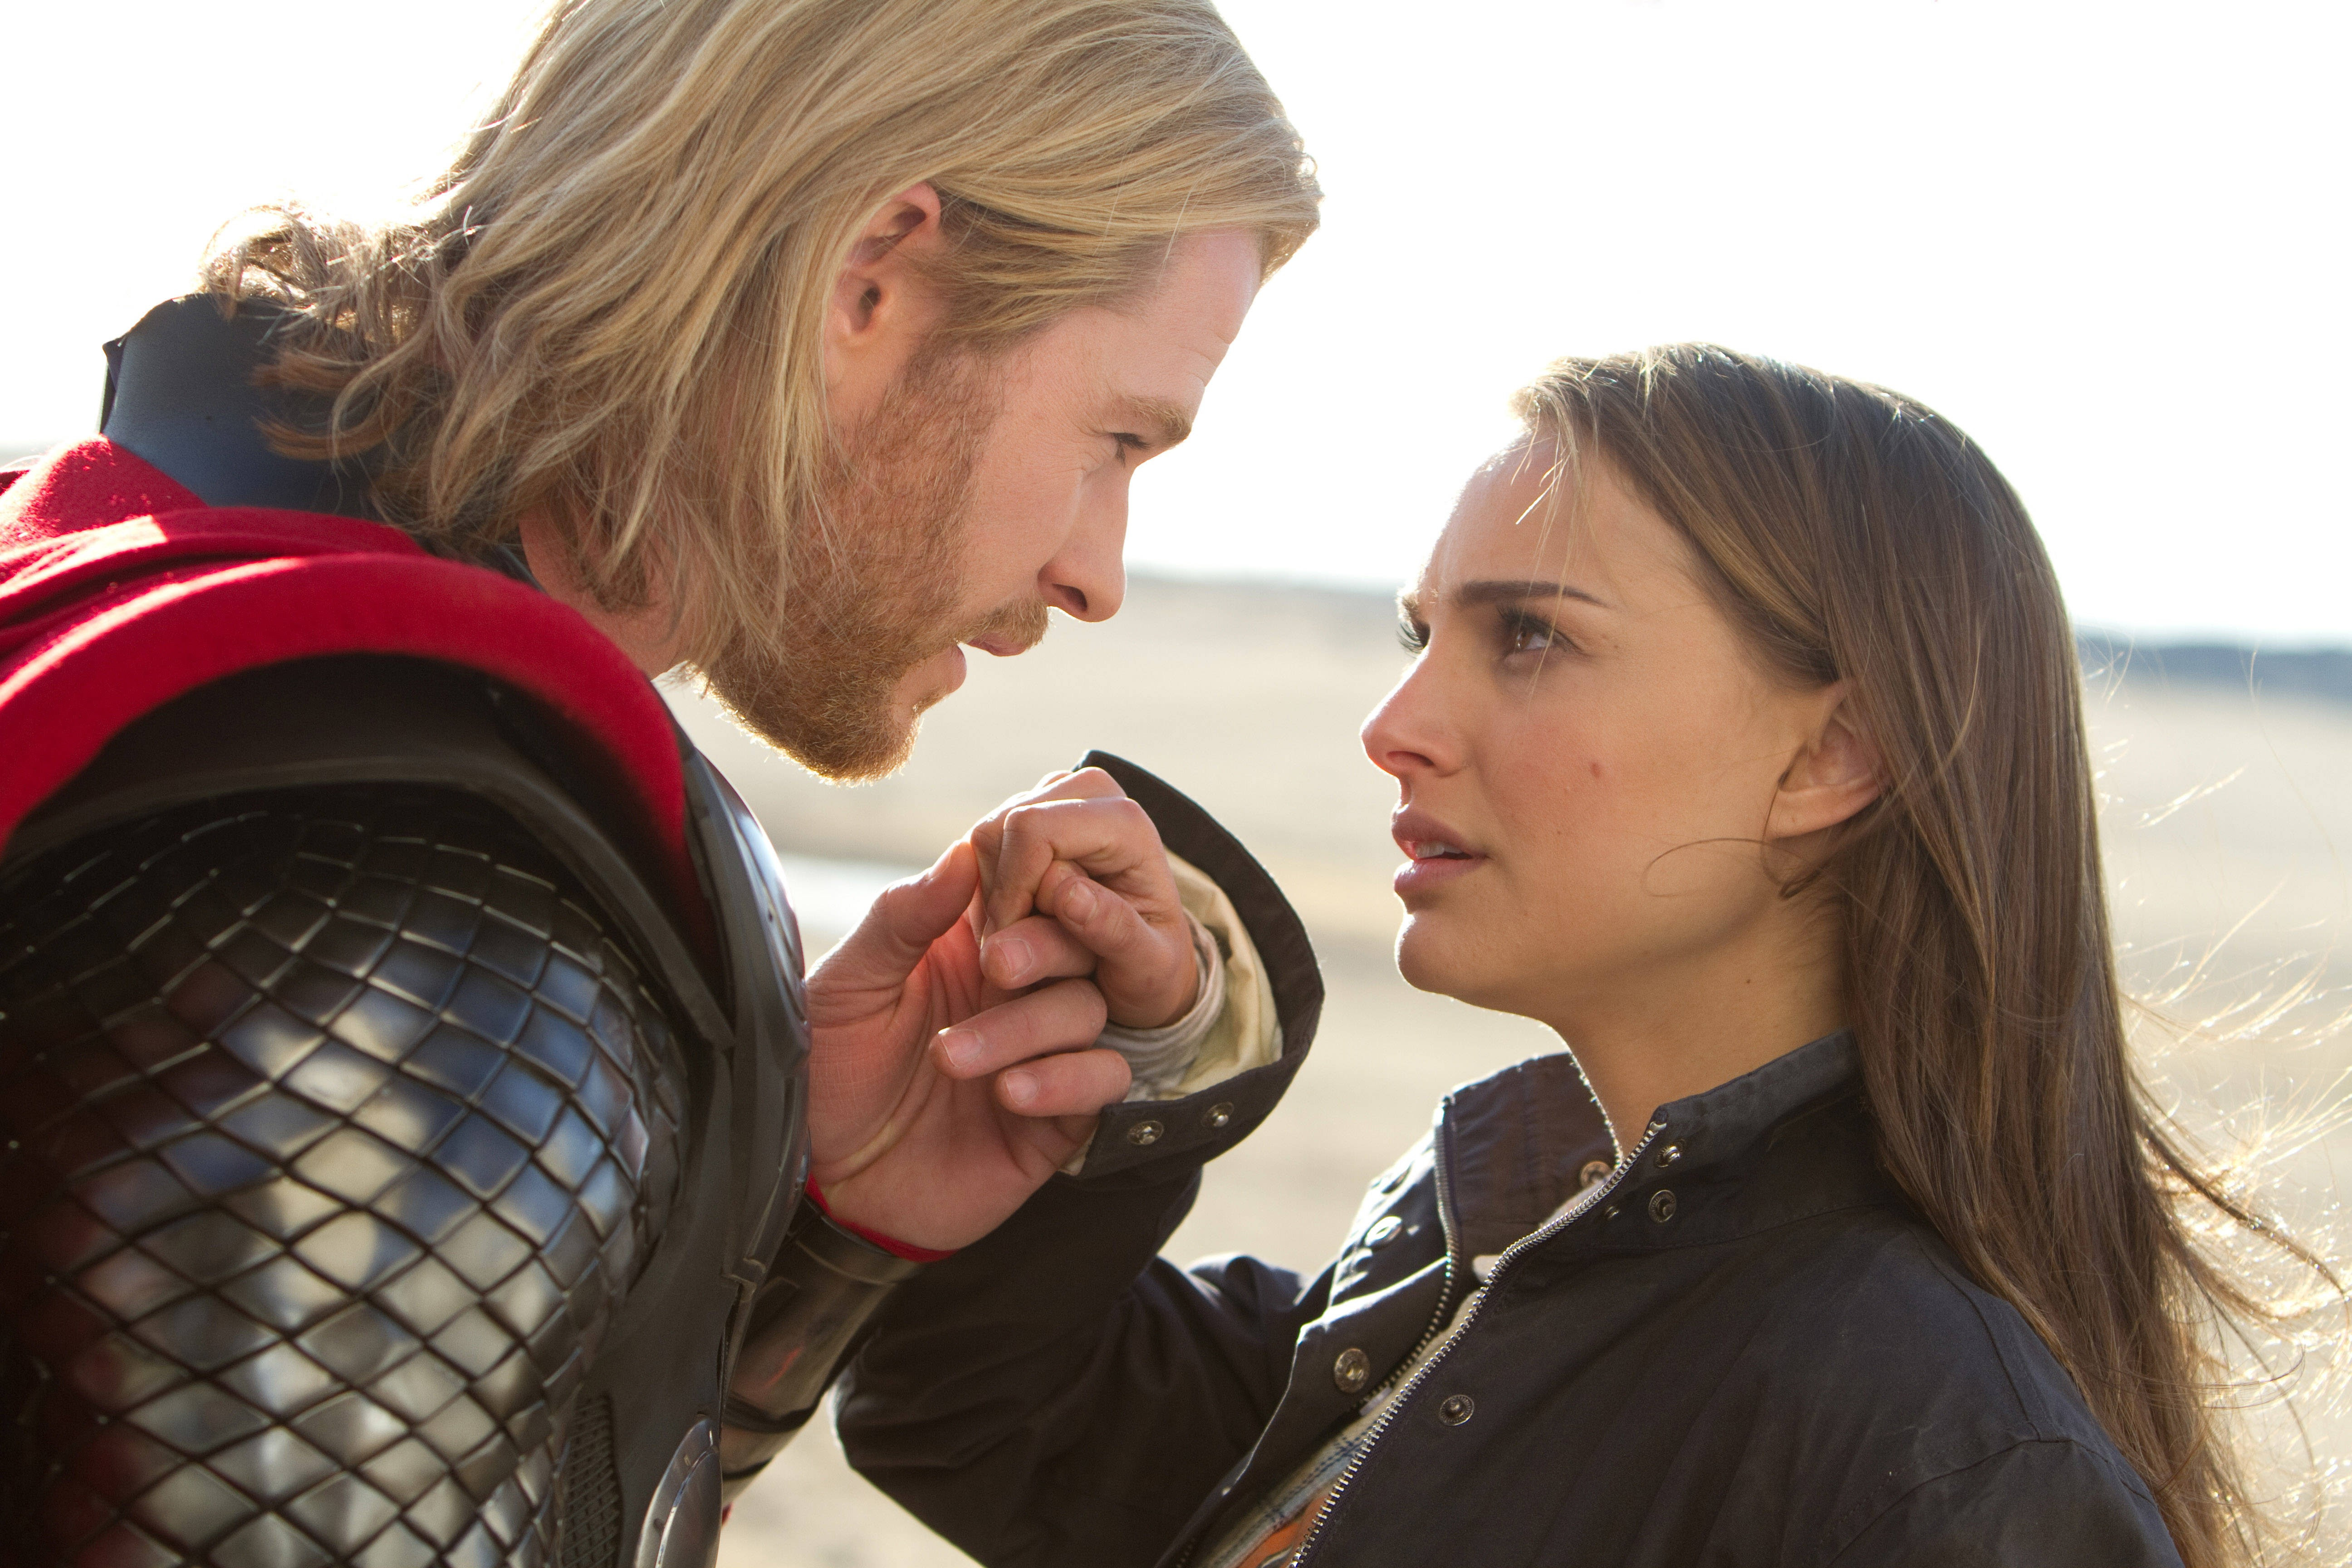 http://static2.wikia.nocookie.net/__cb20131119211749/disney/images/8/8a/ThorJane-Thor.jpg